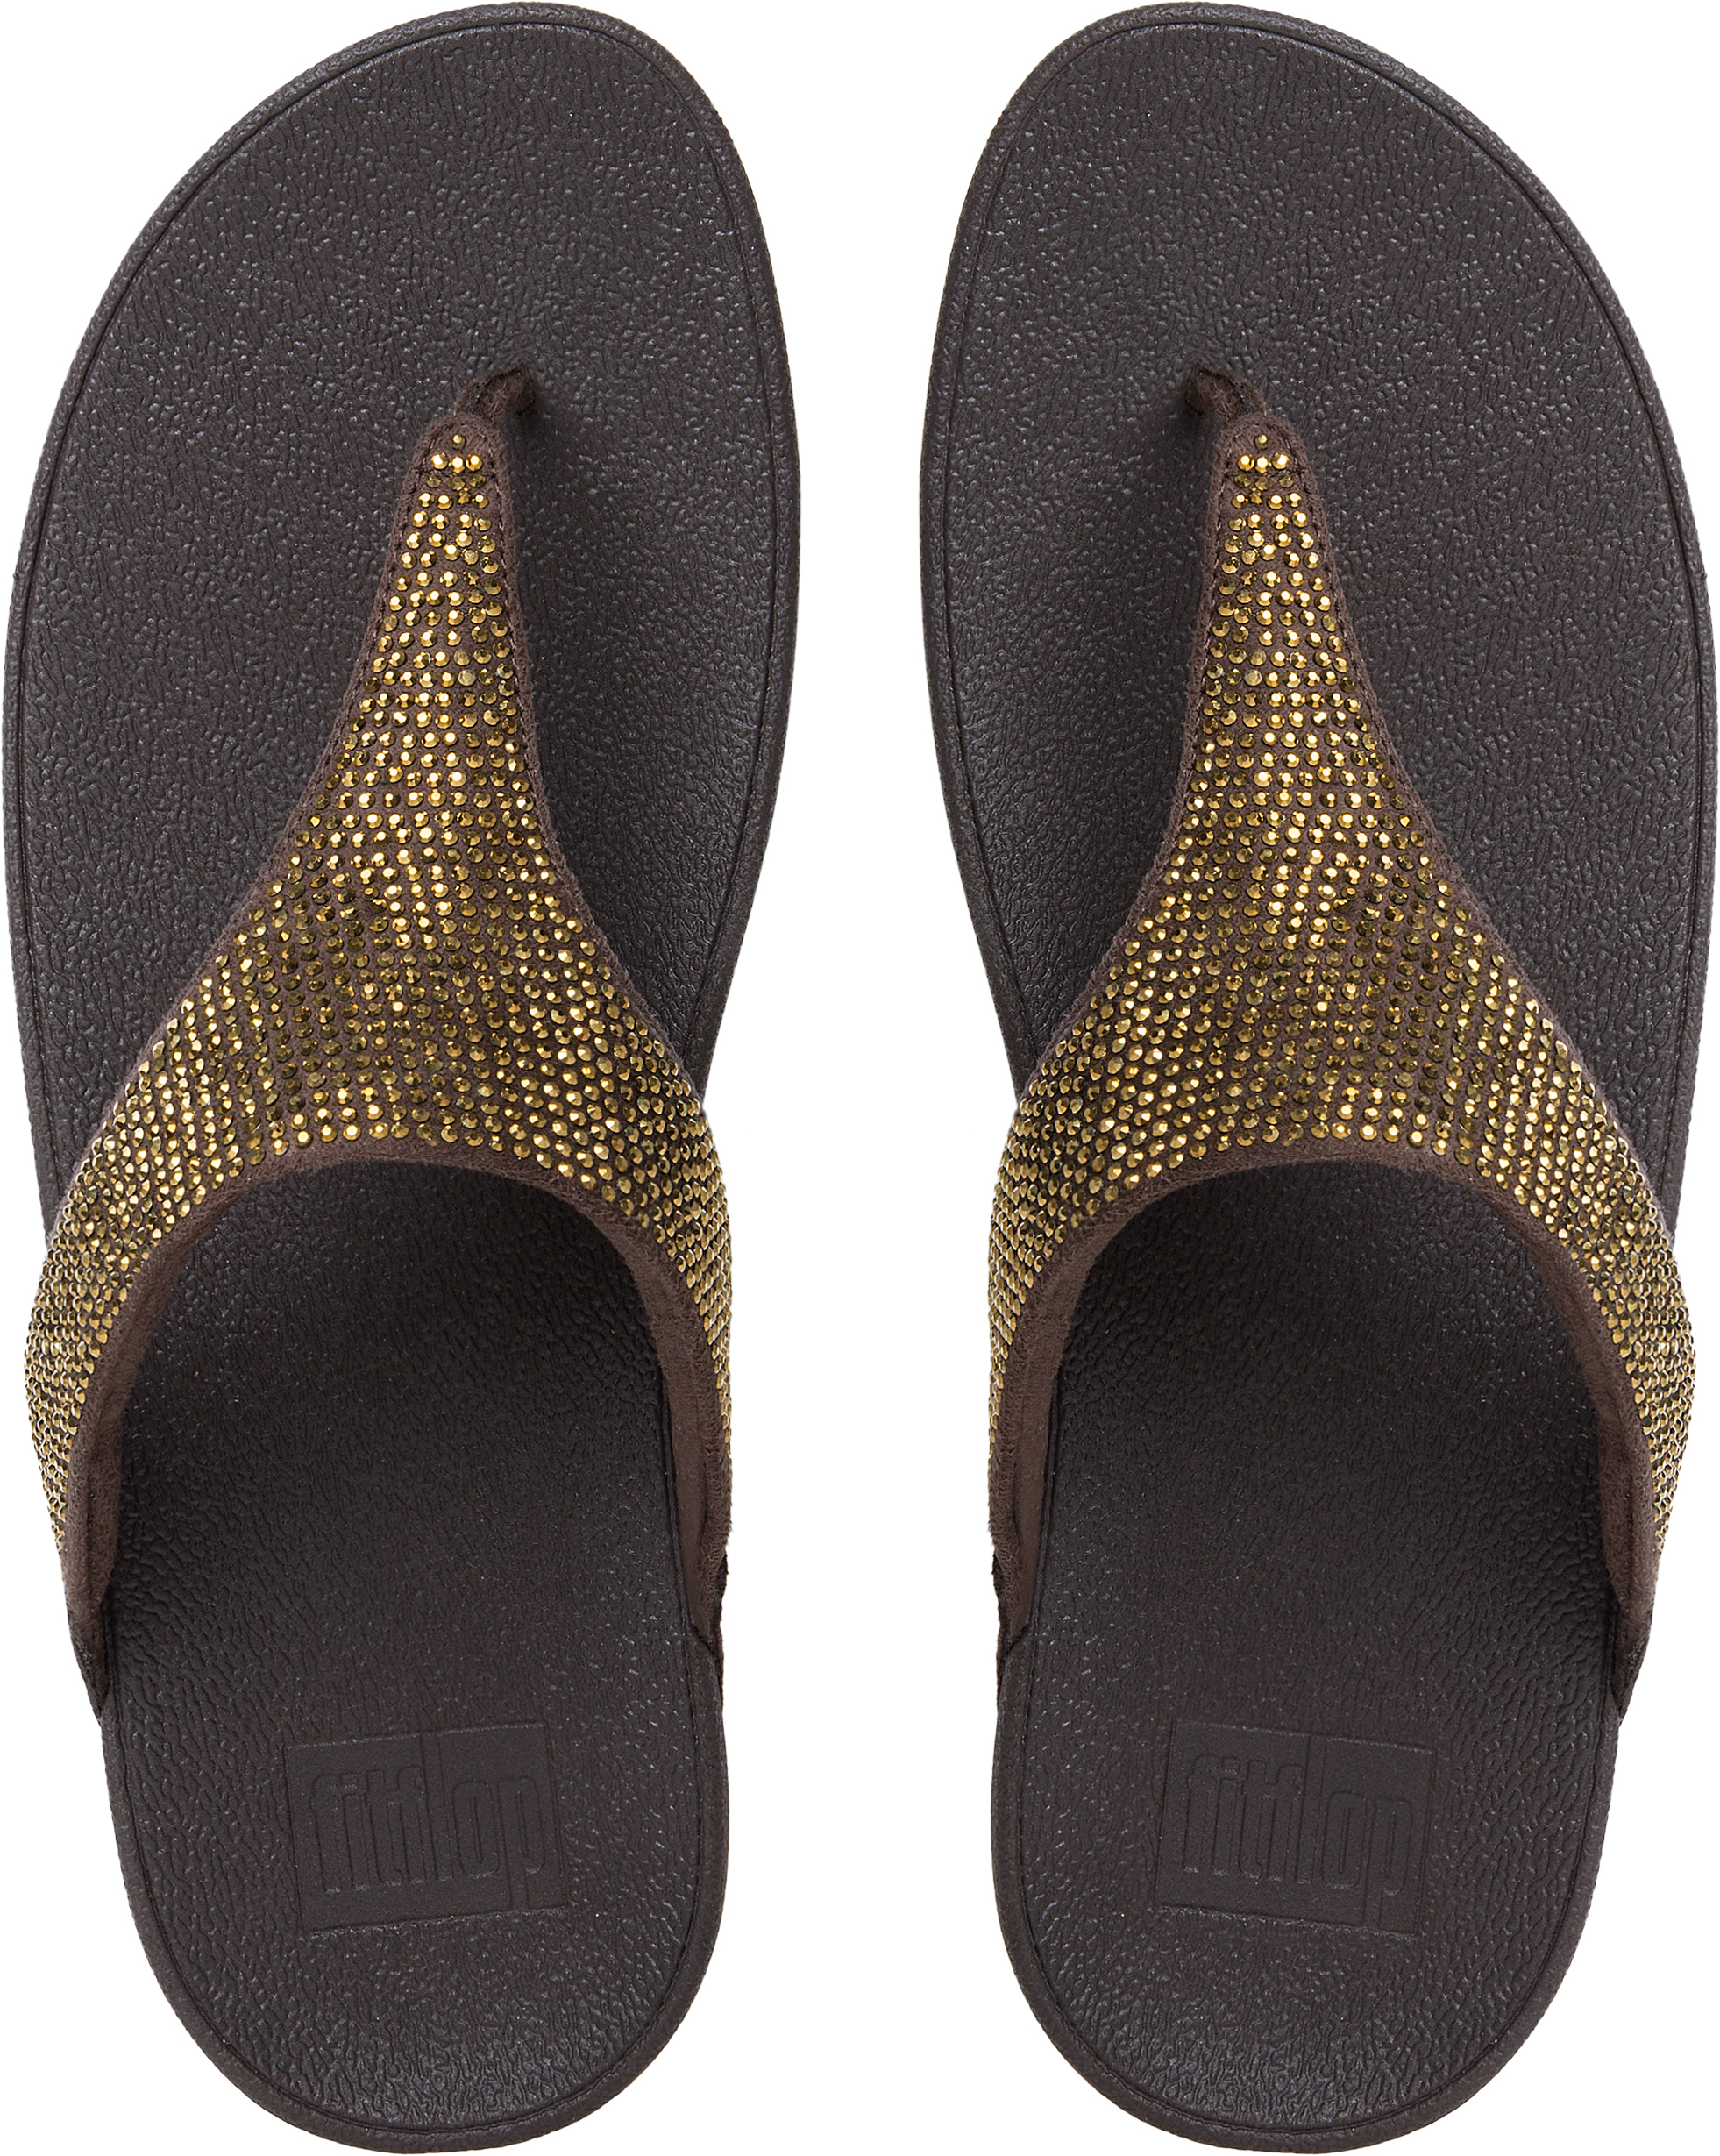 54ee2a1435d FitFlop Women s Slinky Rokkit Toe-post Flip Flops Crystal Detailed Strap  Uk6 Chocolate. About this product. Picture 1 of 4  Picture 2 of 4  Picture  3 of 4 ...